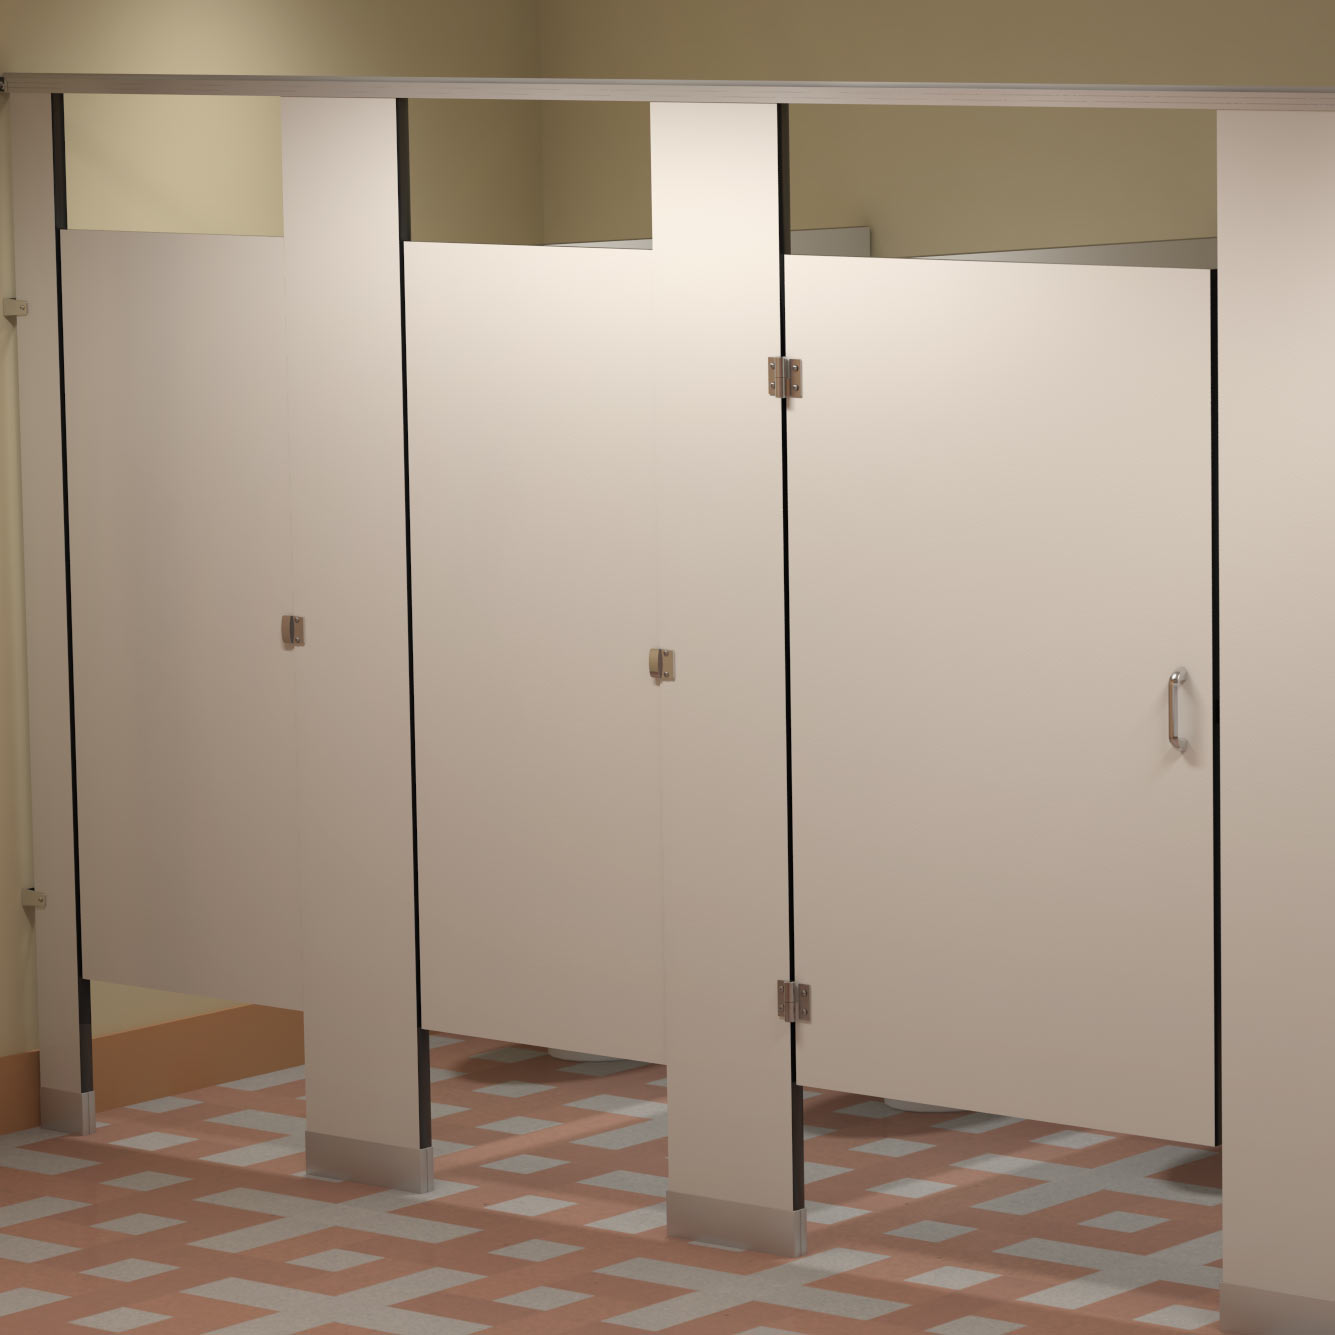 Custom Layout Design For Commercial Restroom Dividers - Bathroom partition design